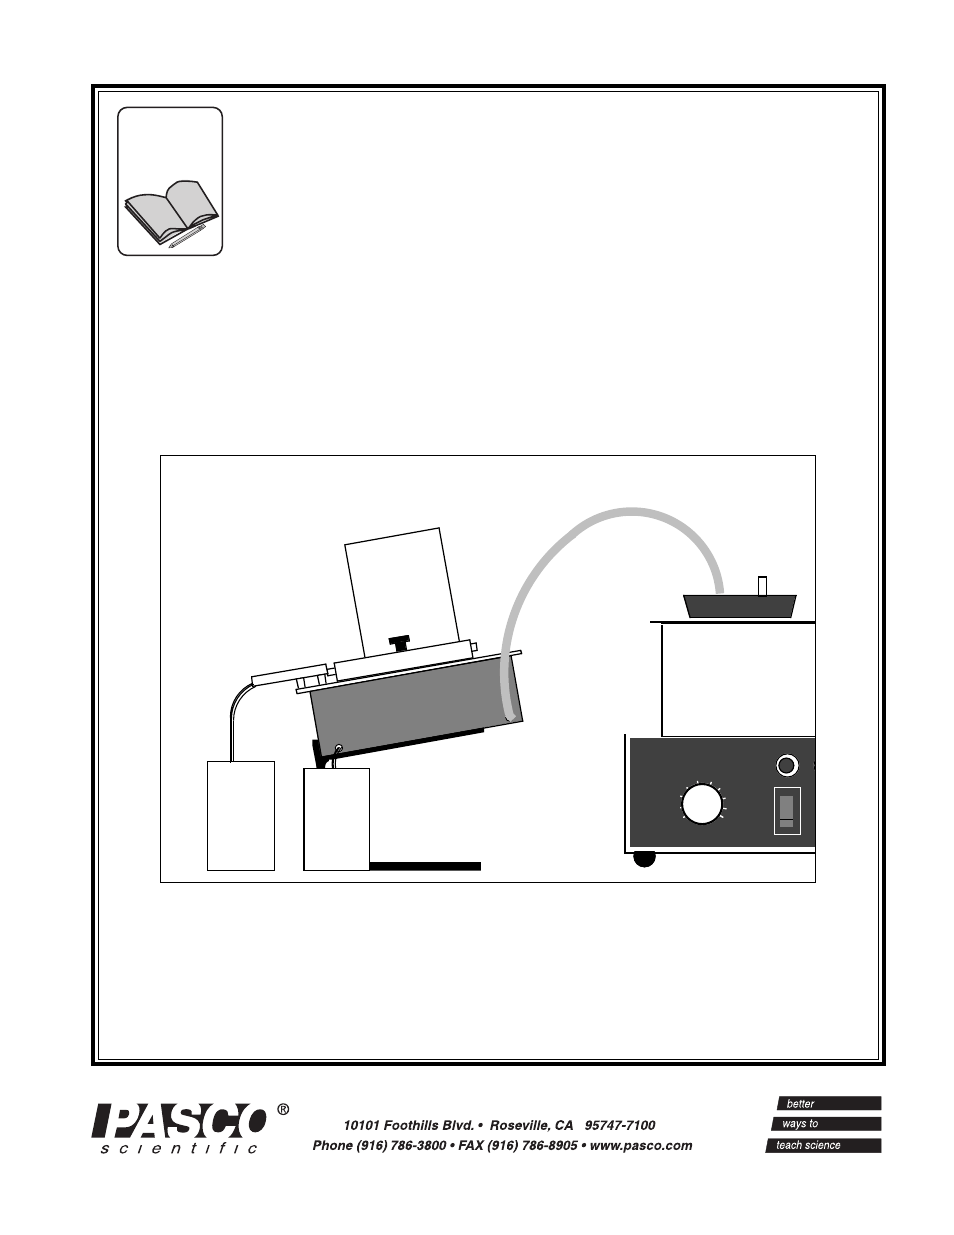 PASCO TD-8561 THERMAL CONDUCTIVITY APPARATUS User Manual